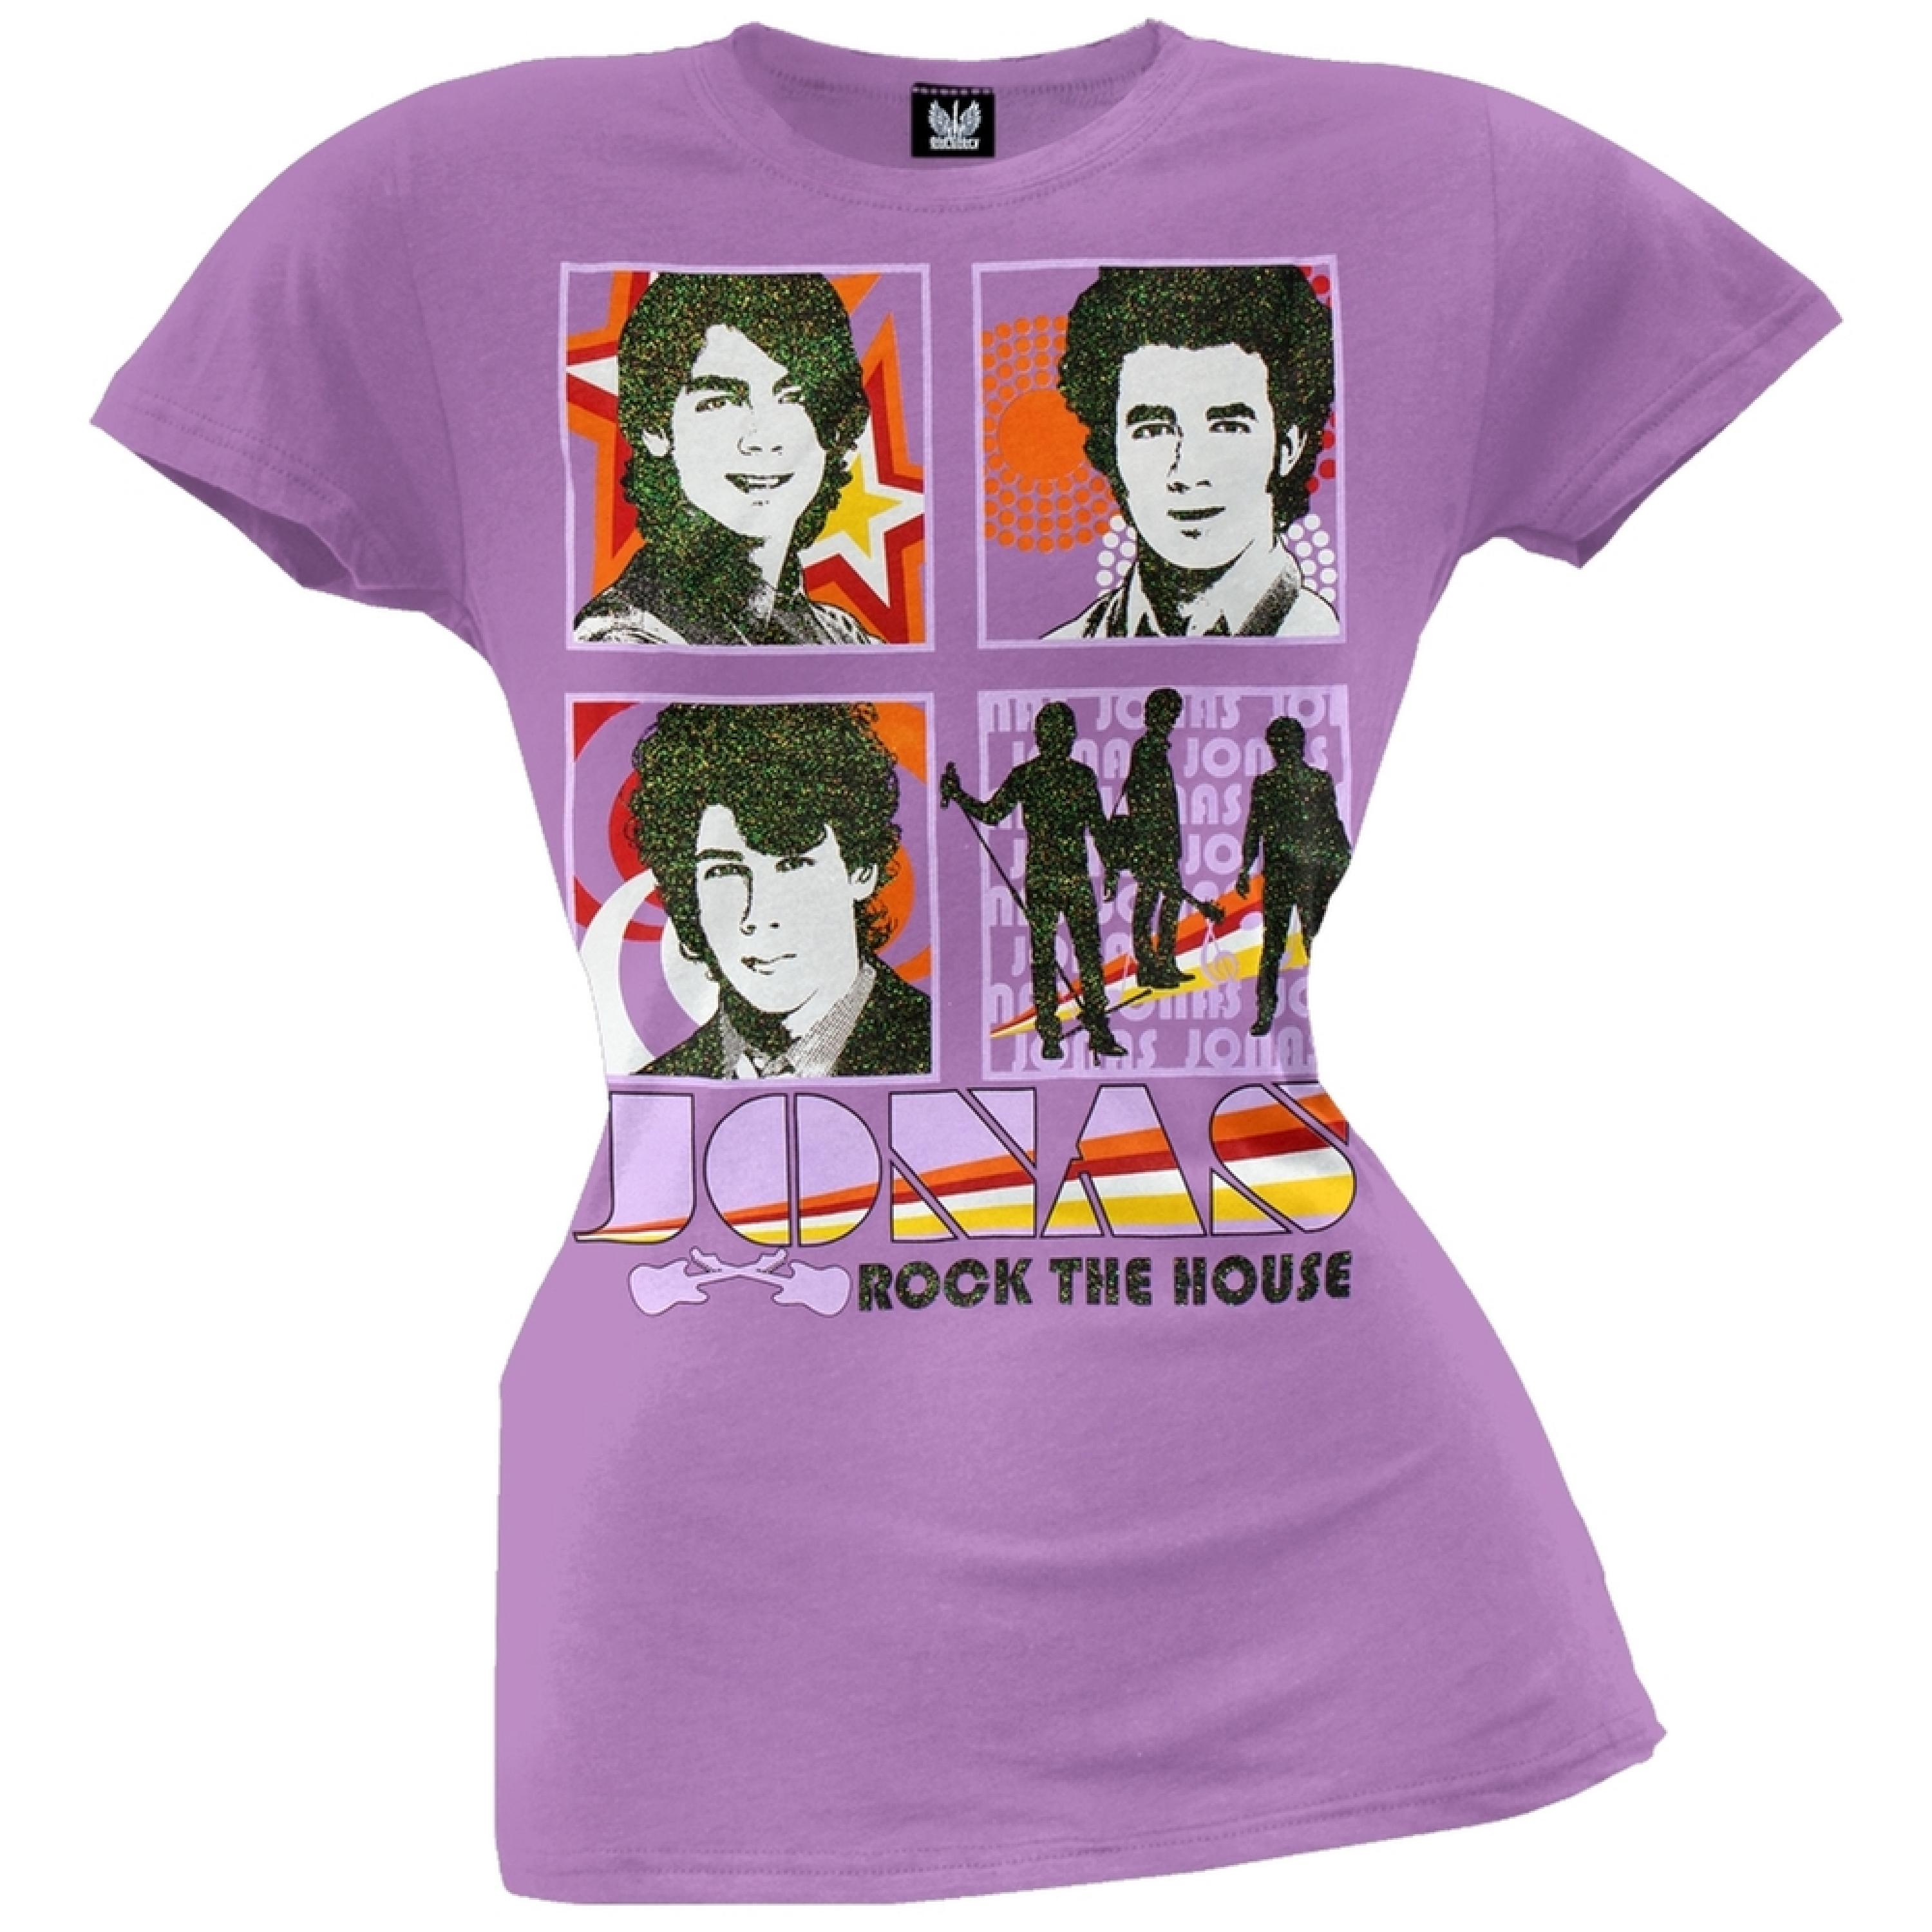 Jonas Brothers - In A Box Girls Youth T-Shirt